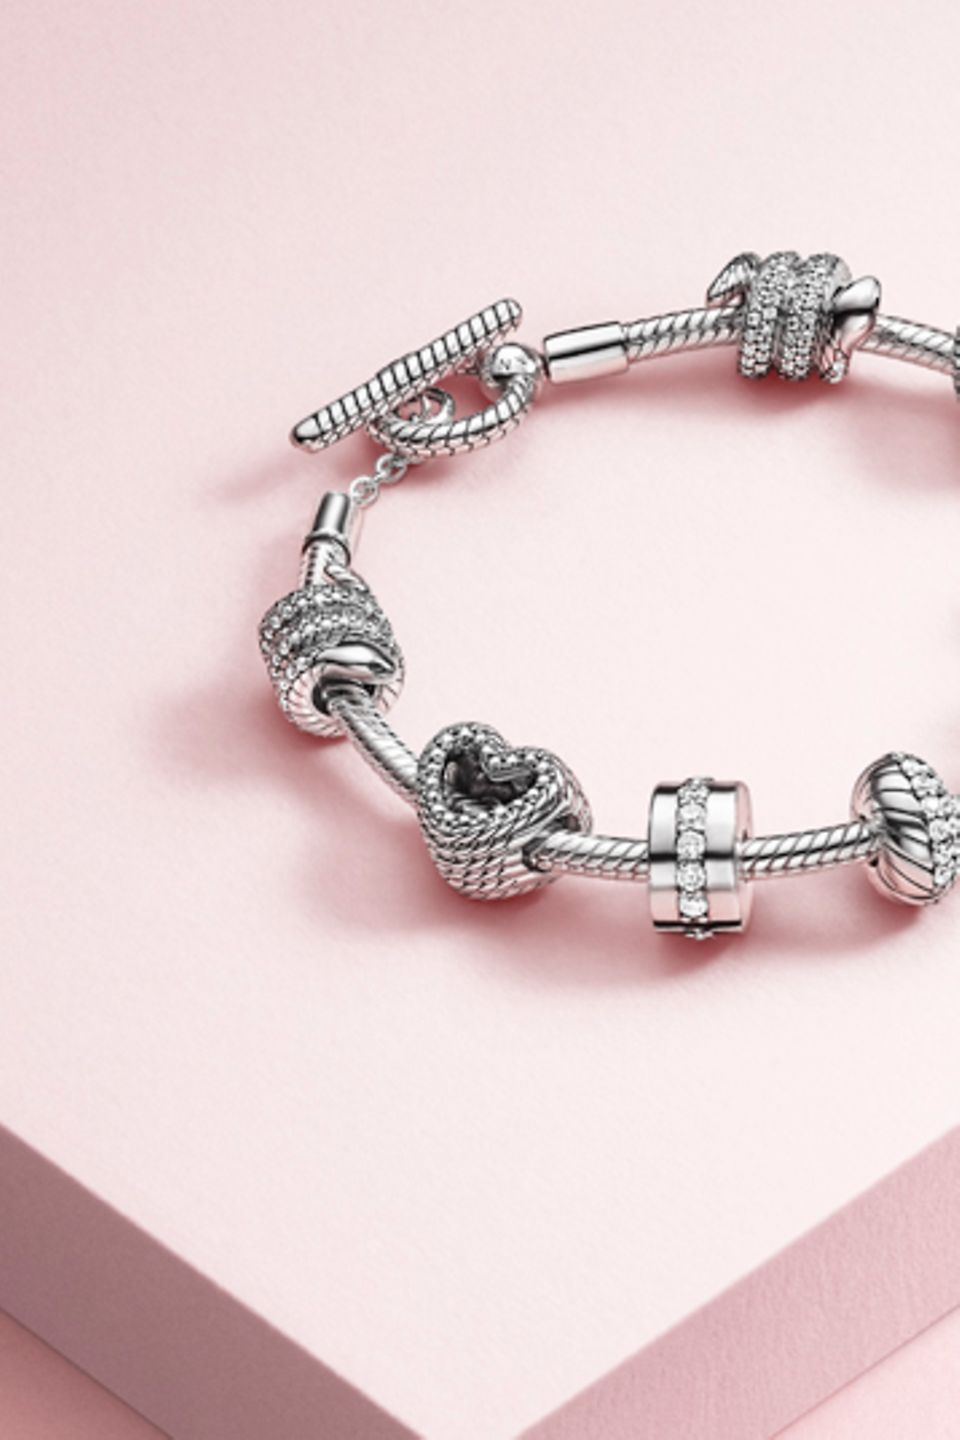 Snake chain pattern bracelet, earrings, charms and Pandora O Pendant